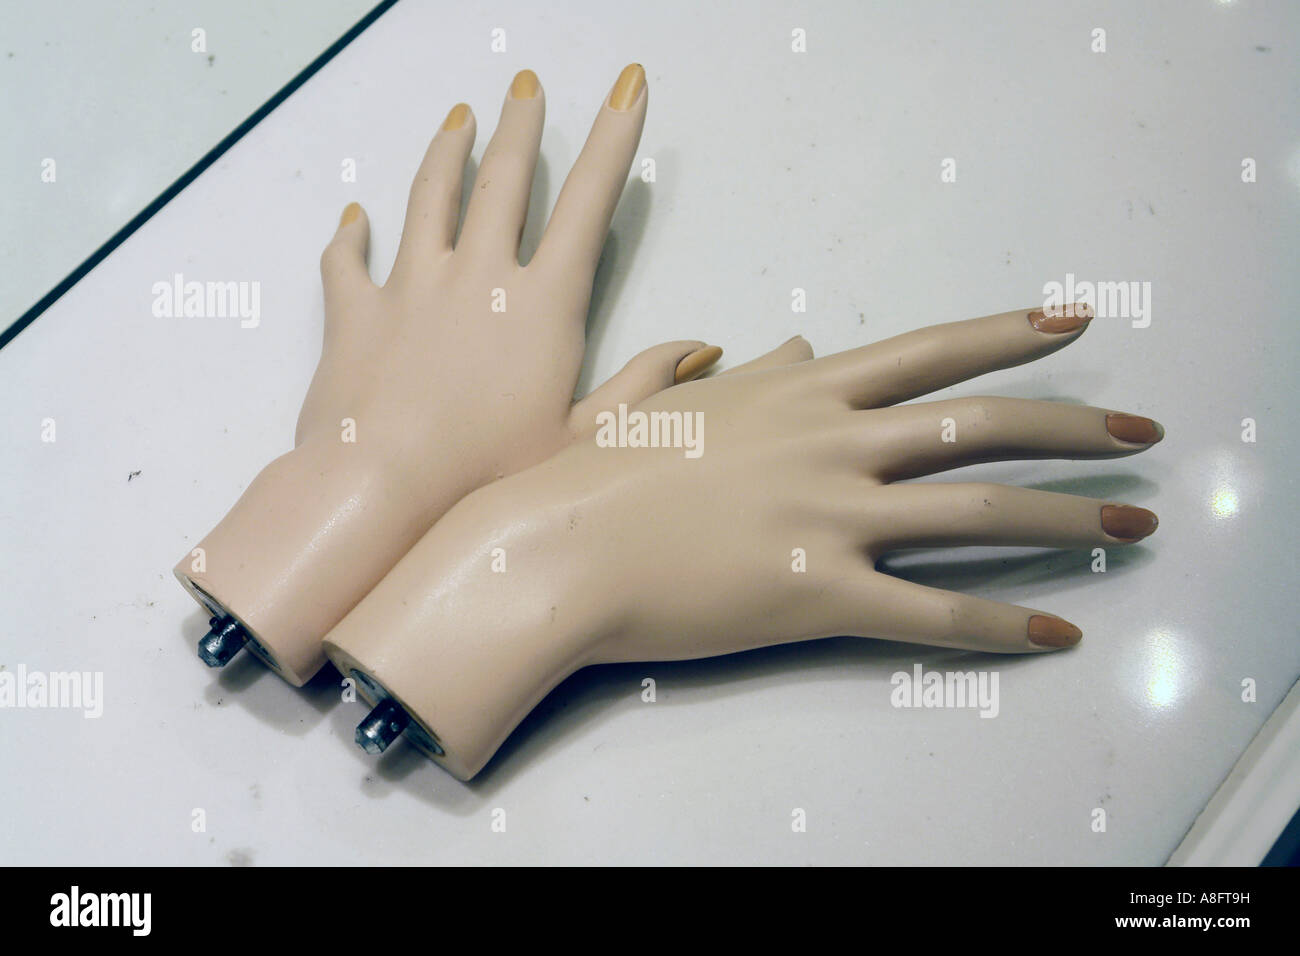 Hands dummies - Stock Image